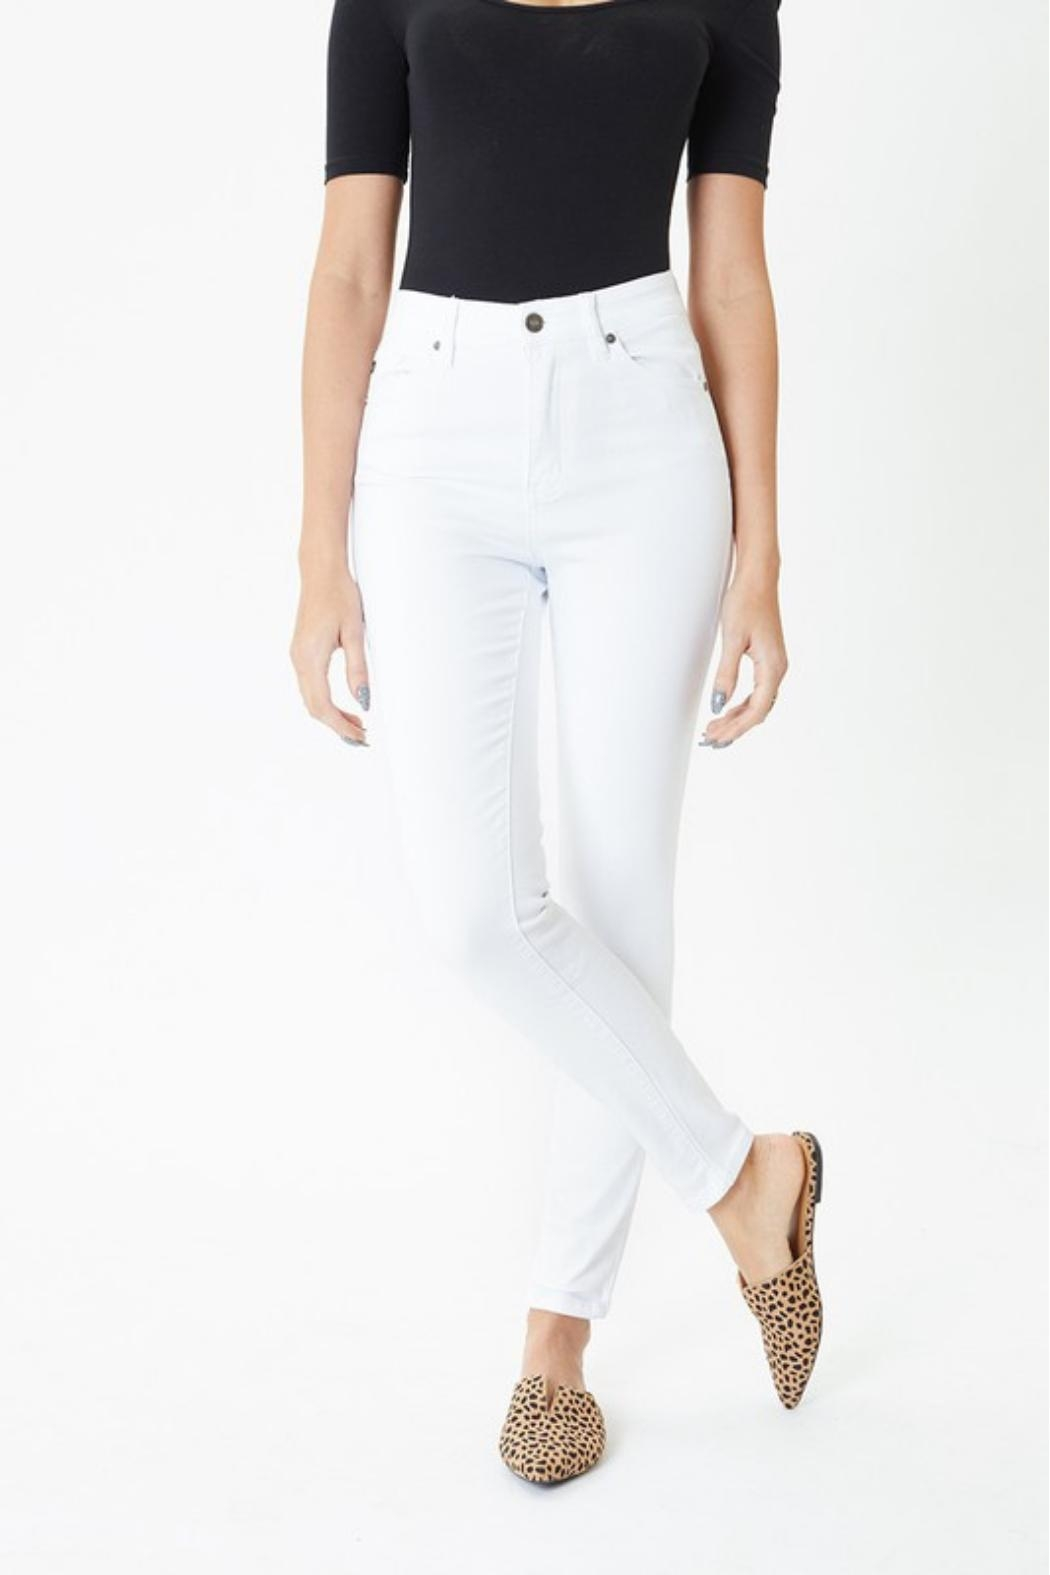 KanCan White Skinny Jeans - Side Cropped Image